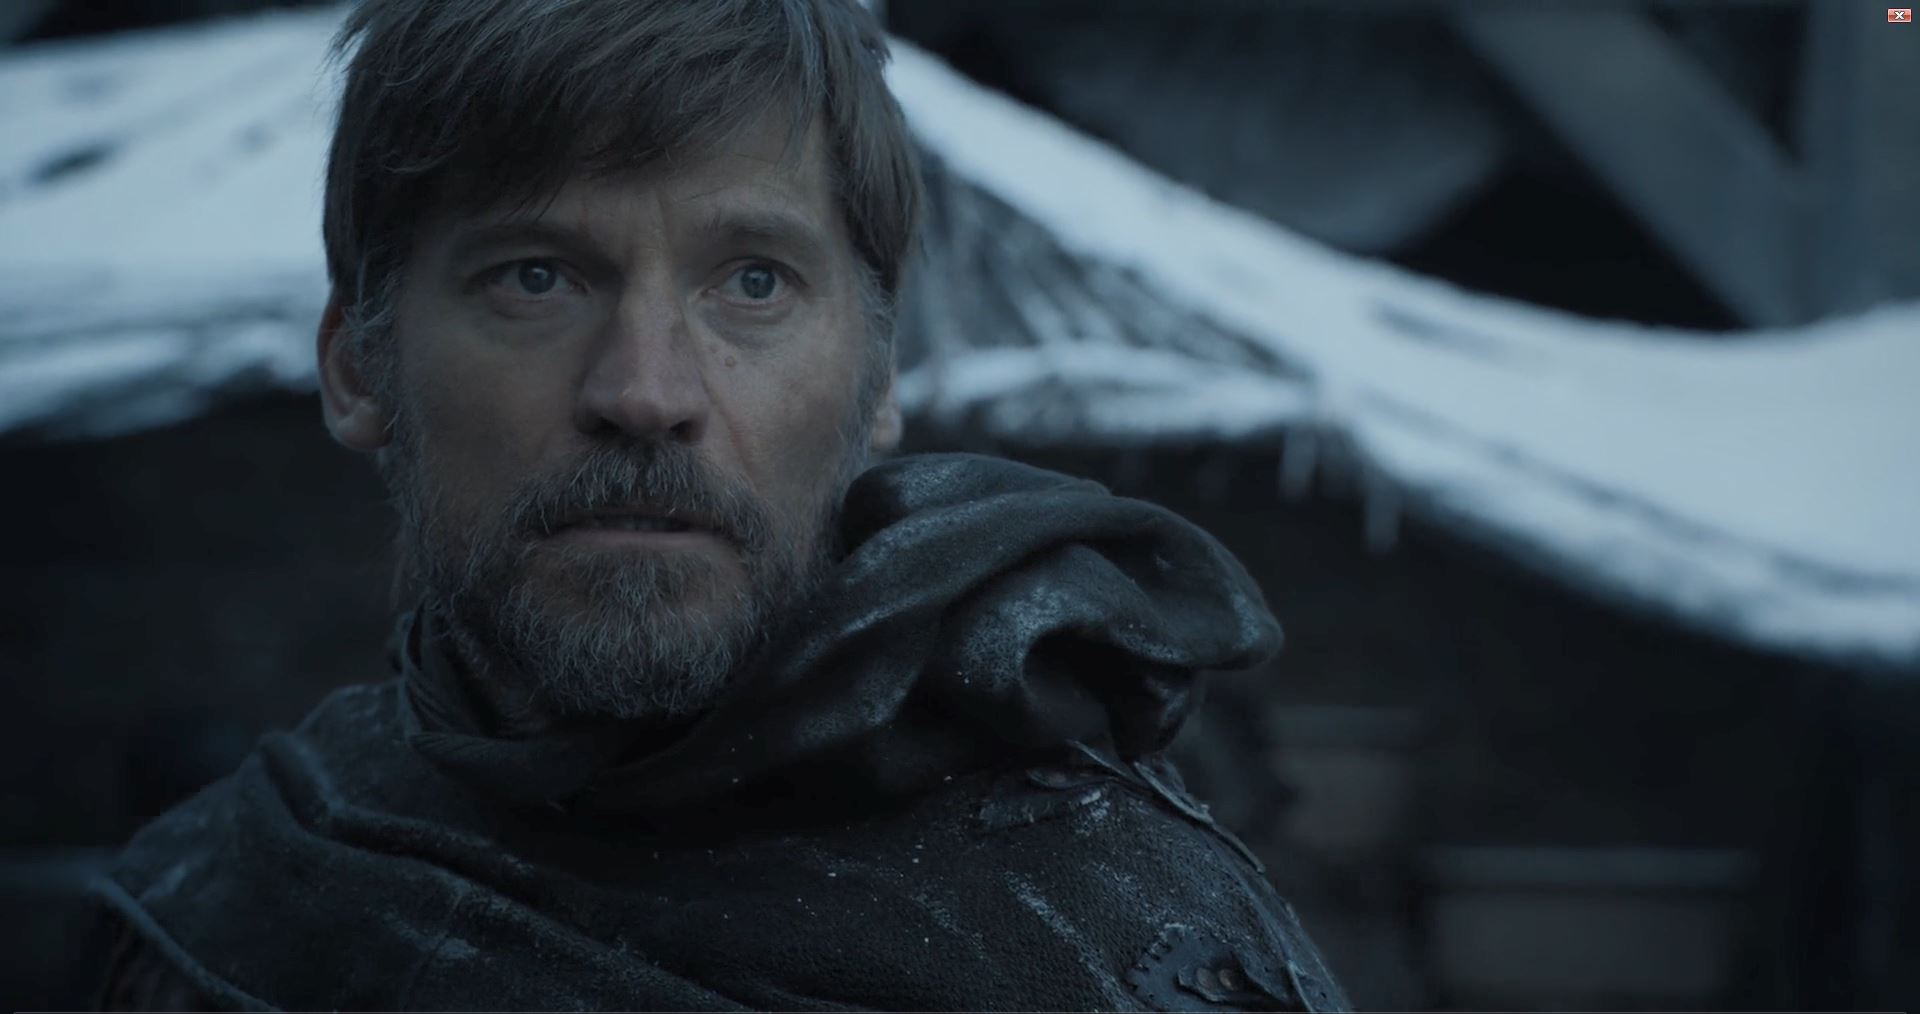 Game of Thrones S08E01 Winterfell Review - Jaime spots Bran